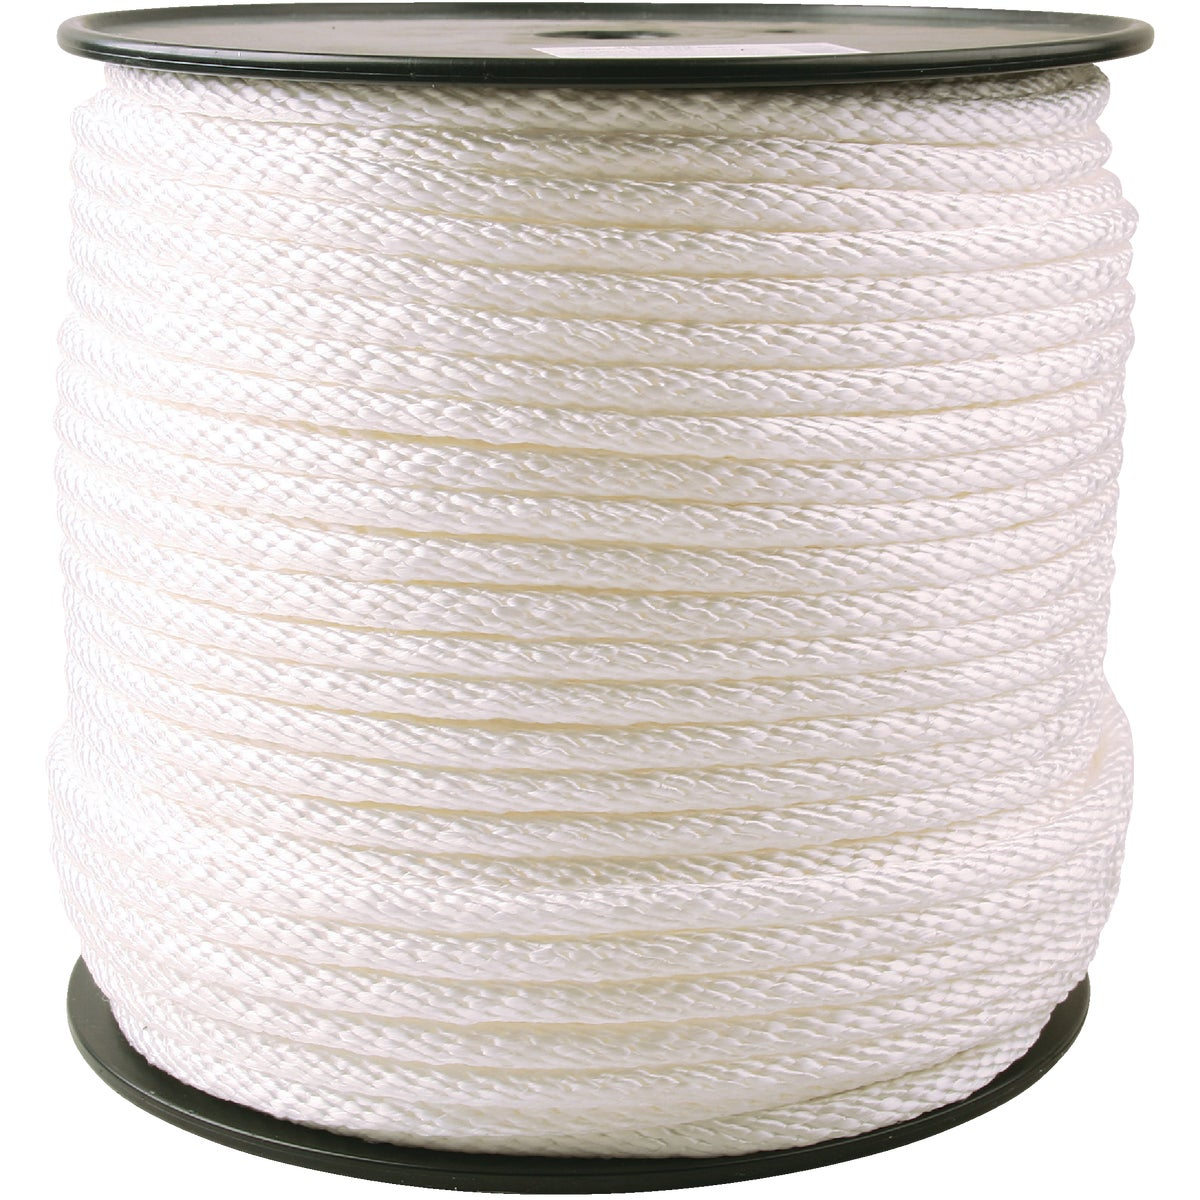 "3/8""X500' NYL BRAID ROPE - 736608 by Do it Best"